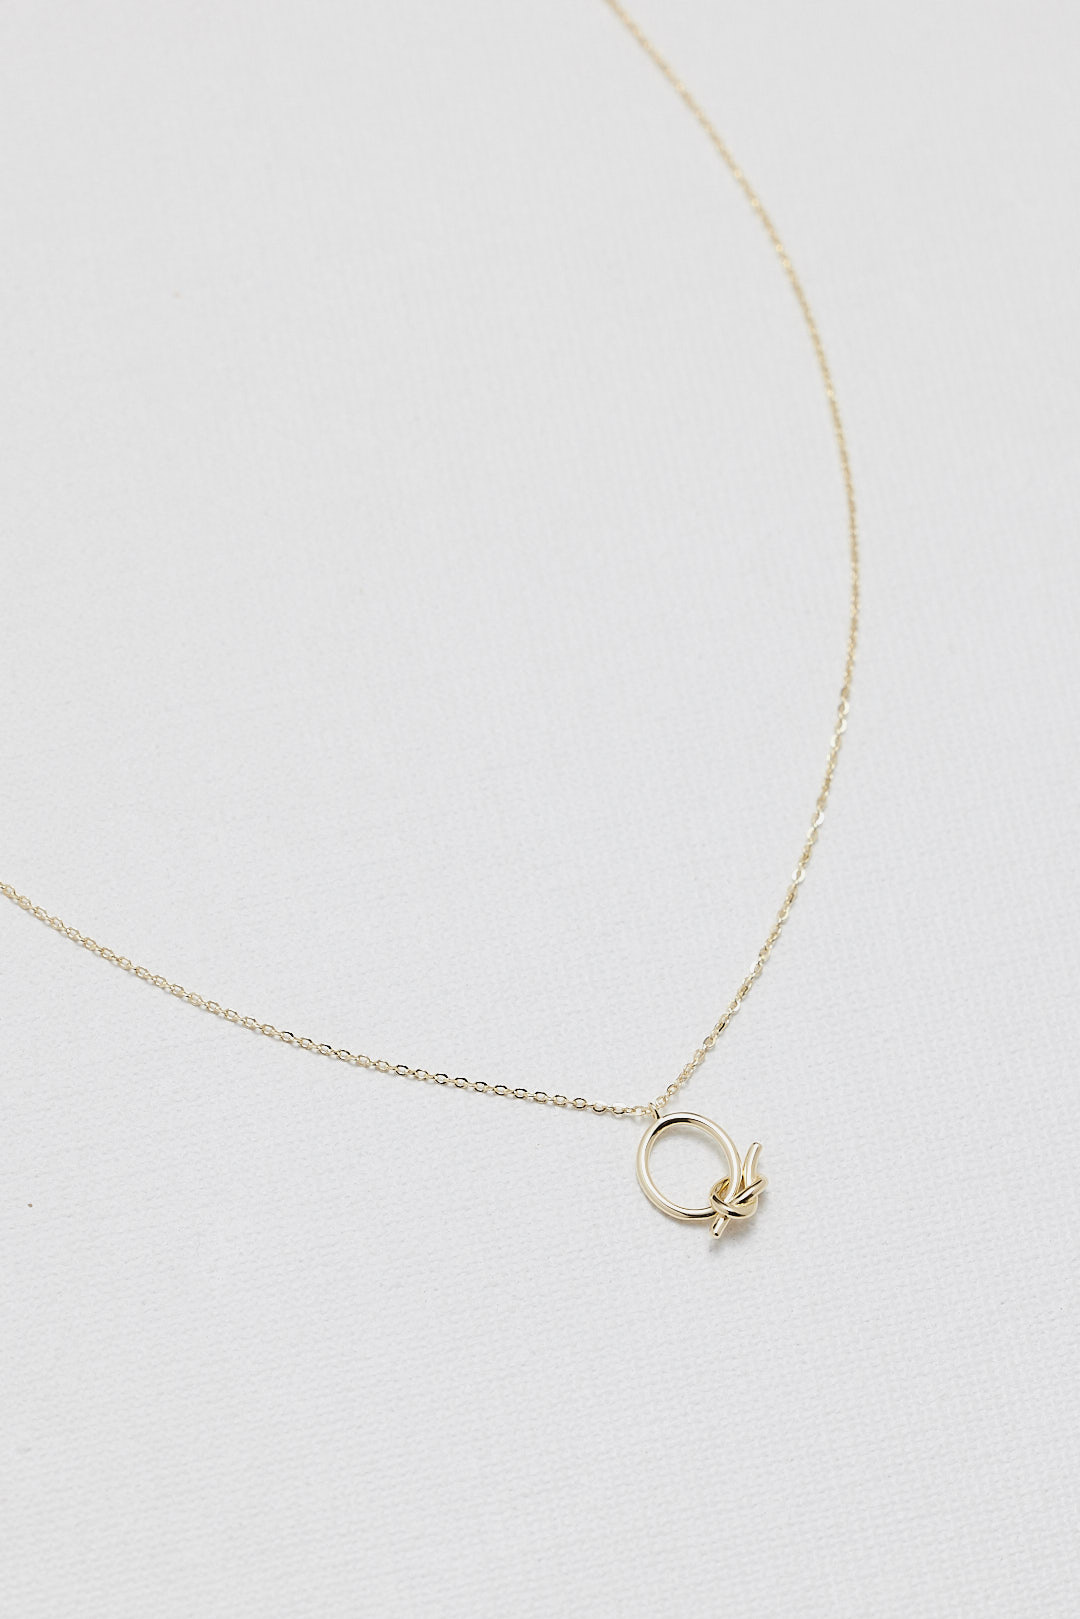 Junia Necklace